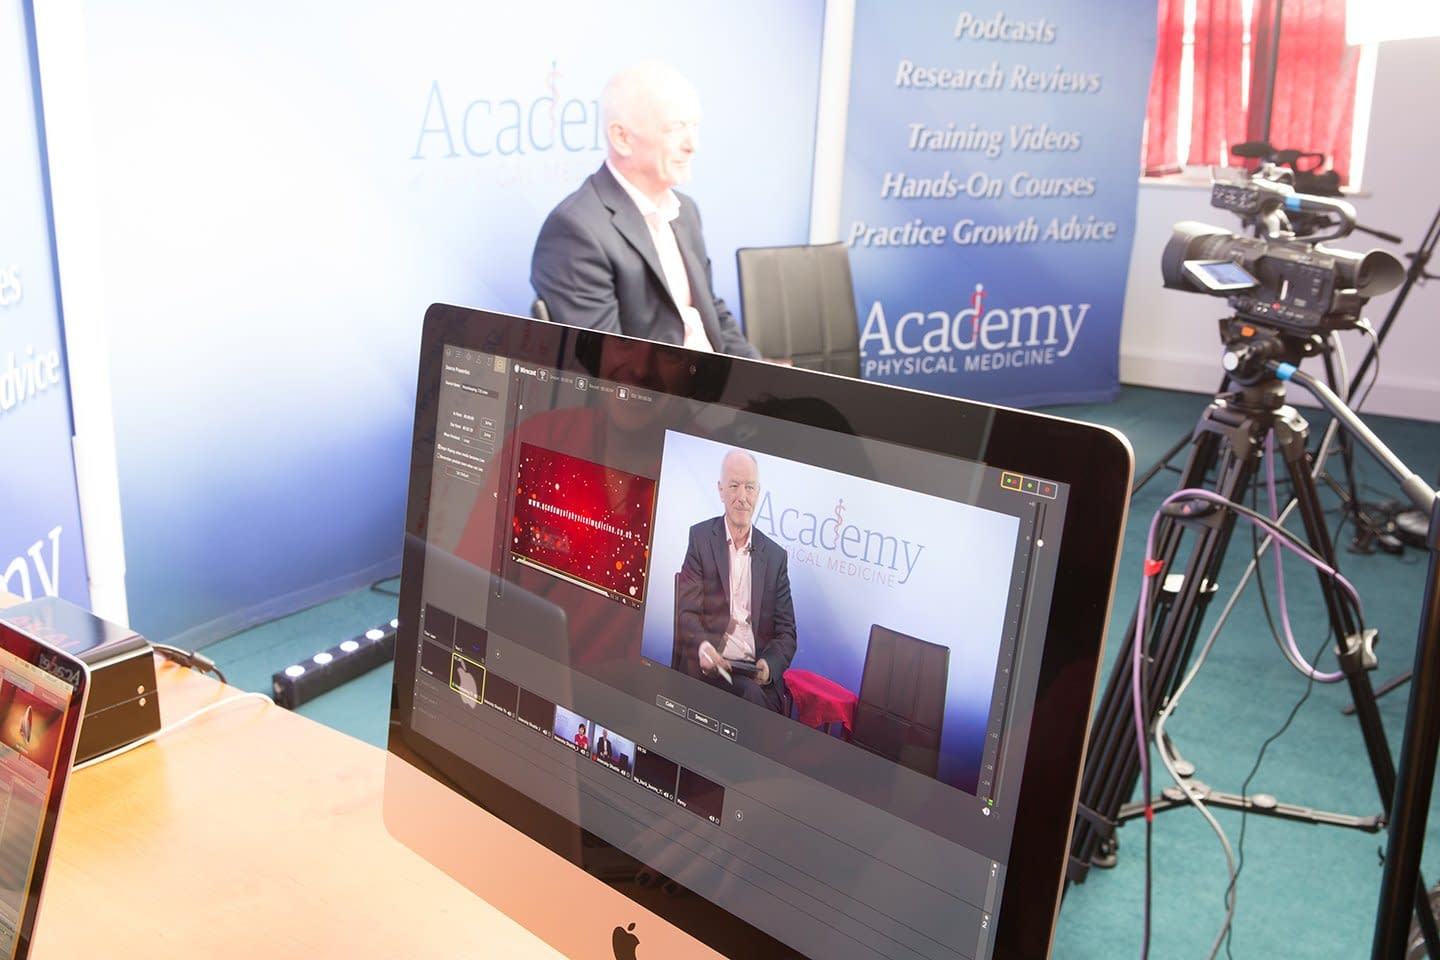 Live Online Osteopathic CPD Broadcast produced by Academy of Physical Medicine